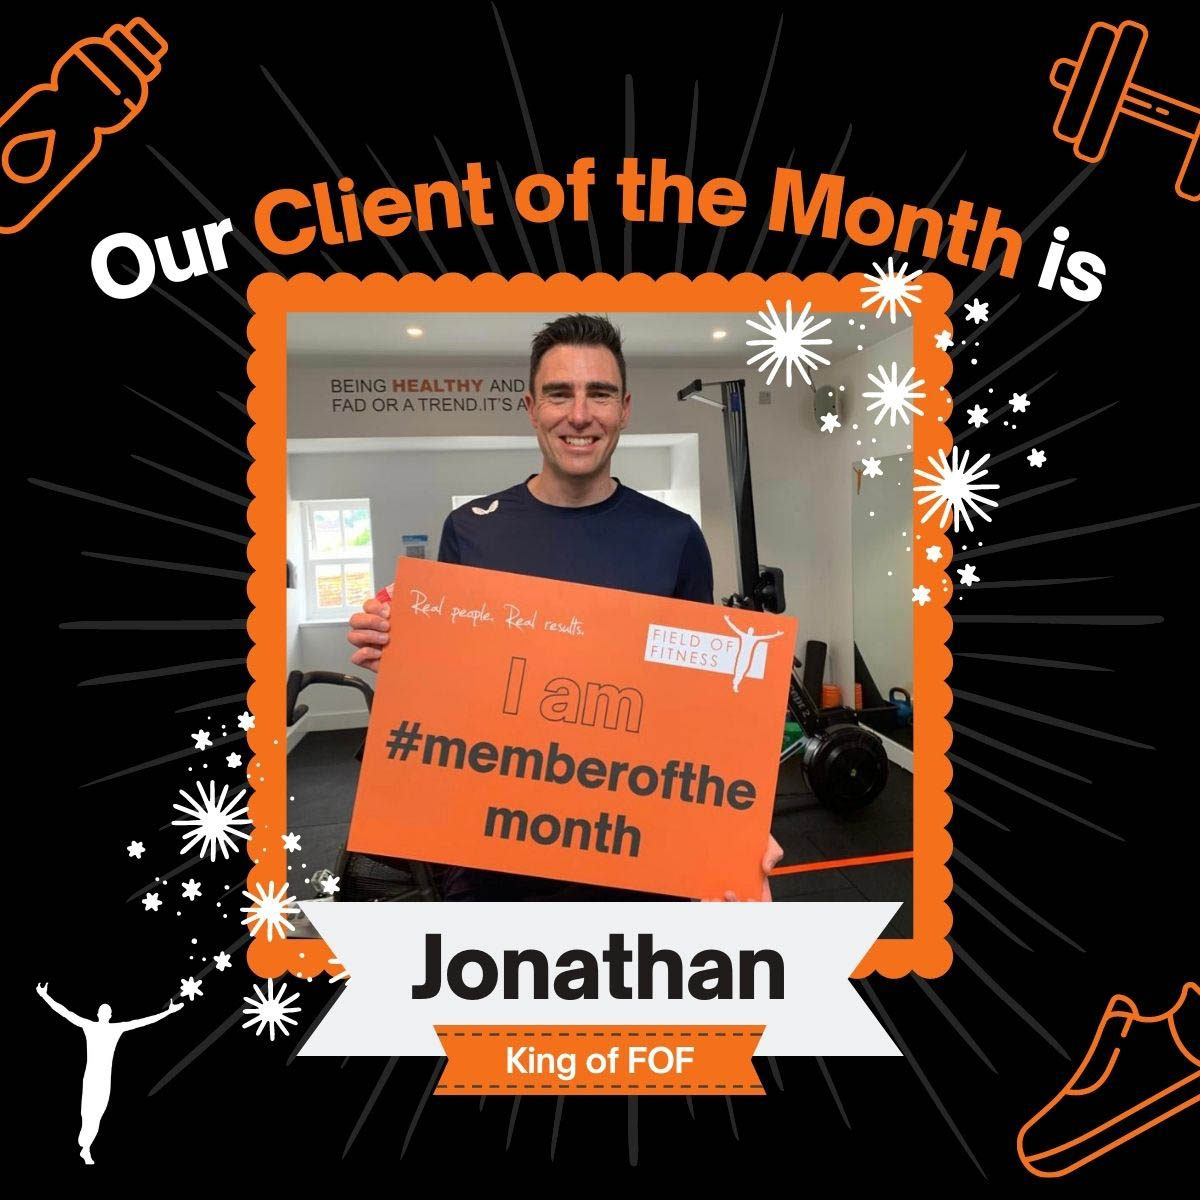 Jonathan - Client of the Month